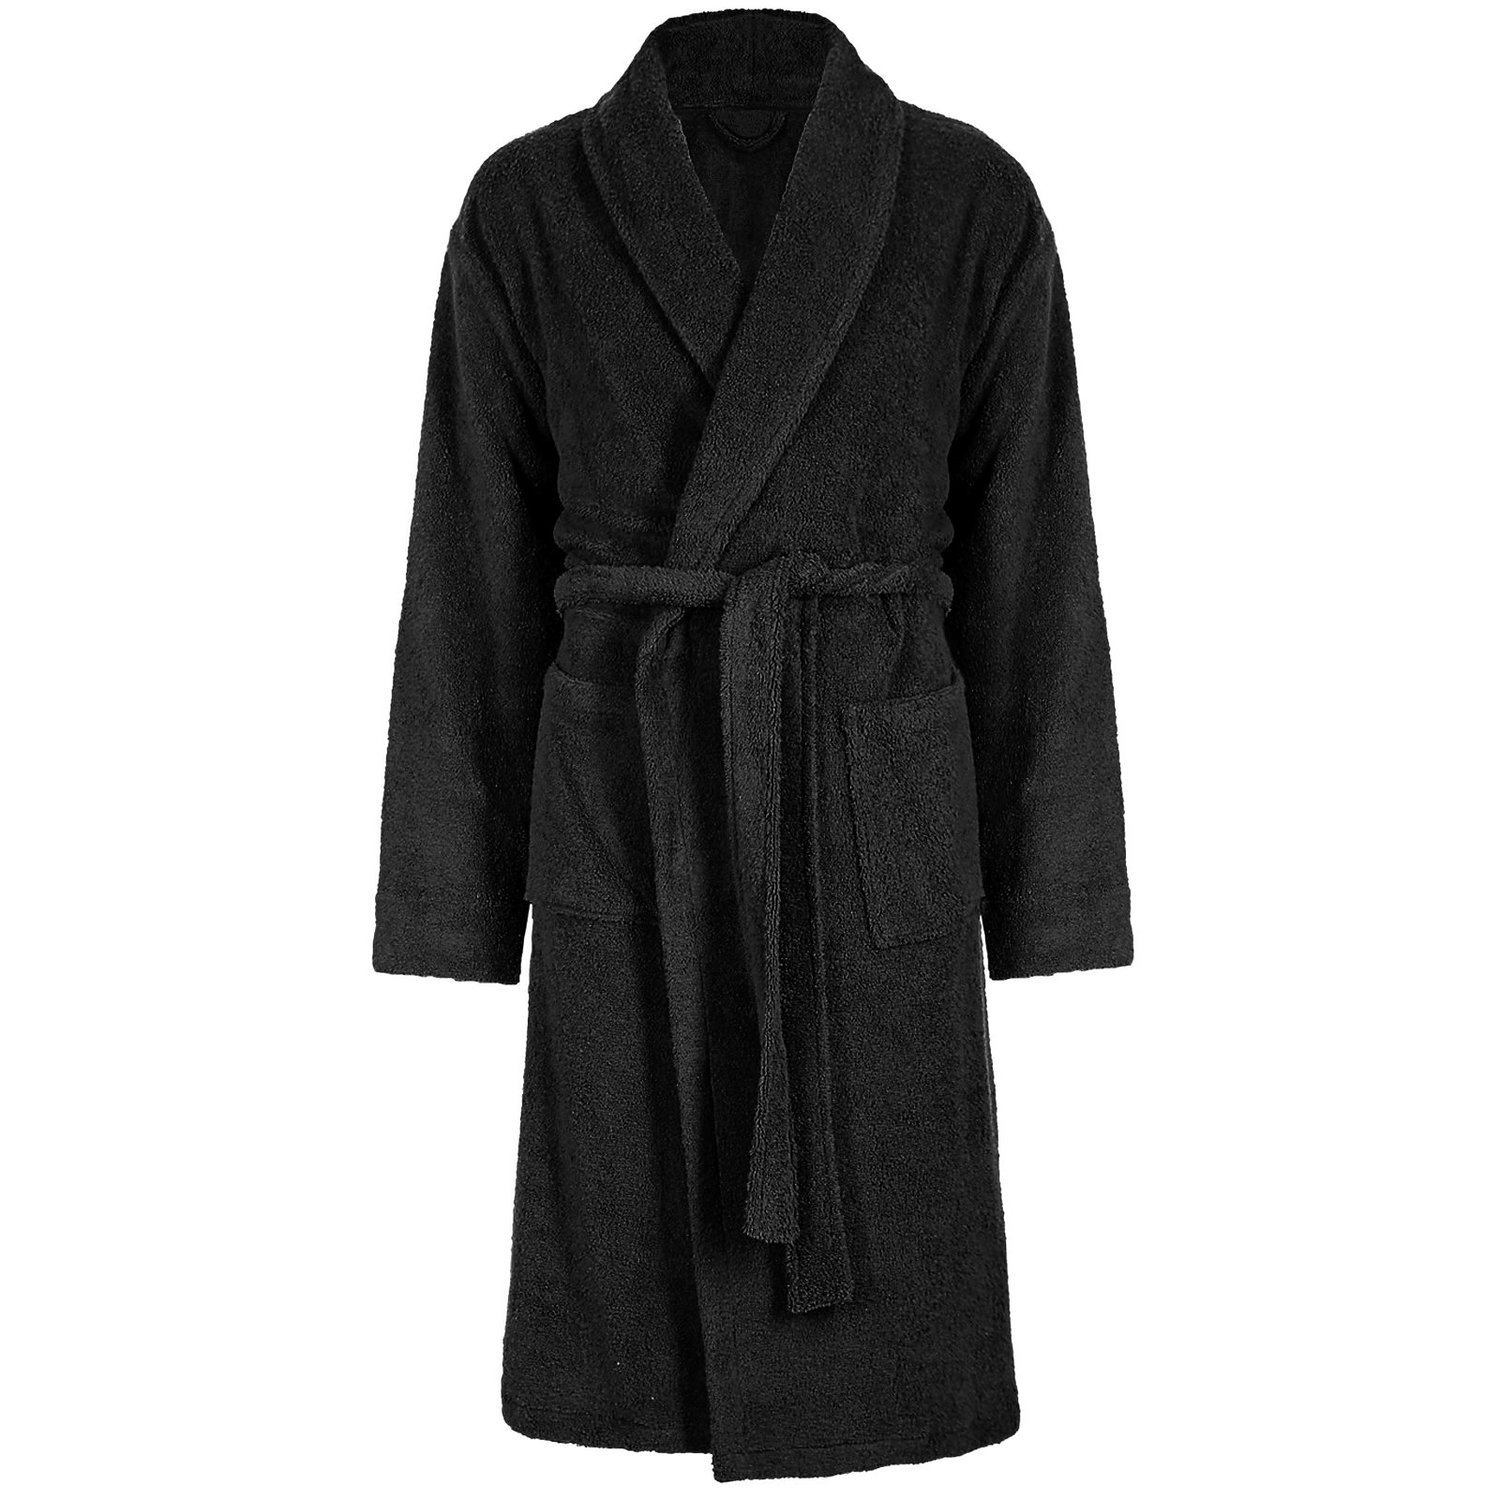 Mens Ladies 100% Cotton Terry Towelling Bath Robe + Matching Belt - Black Free Post